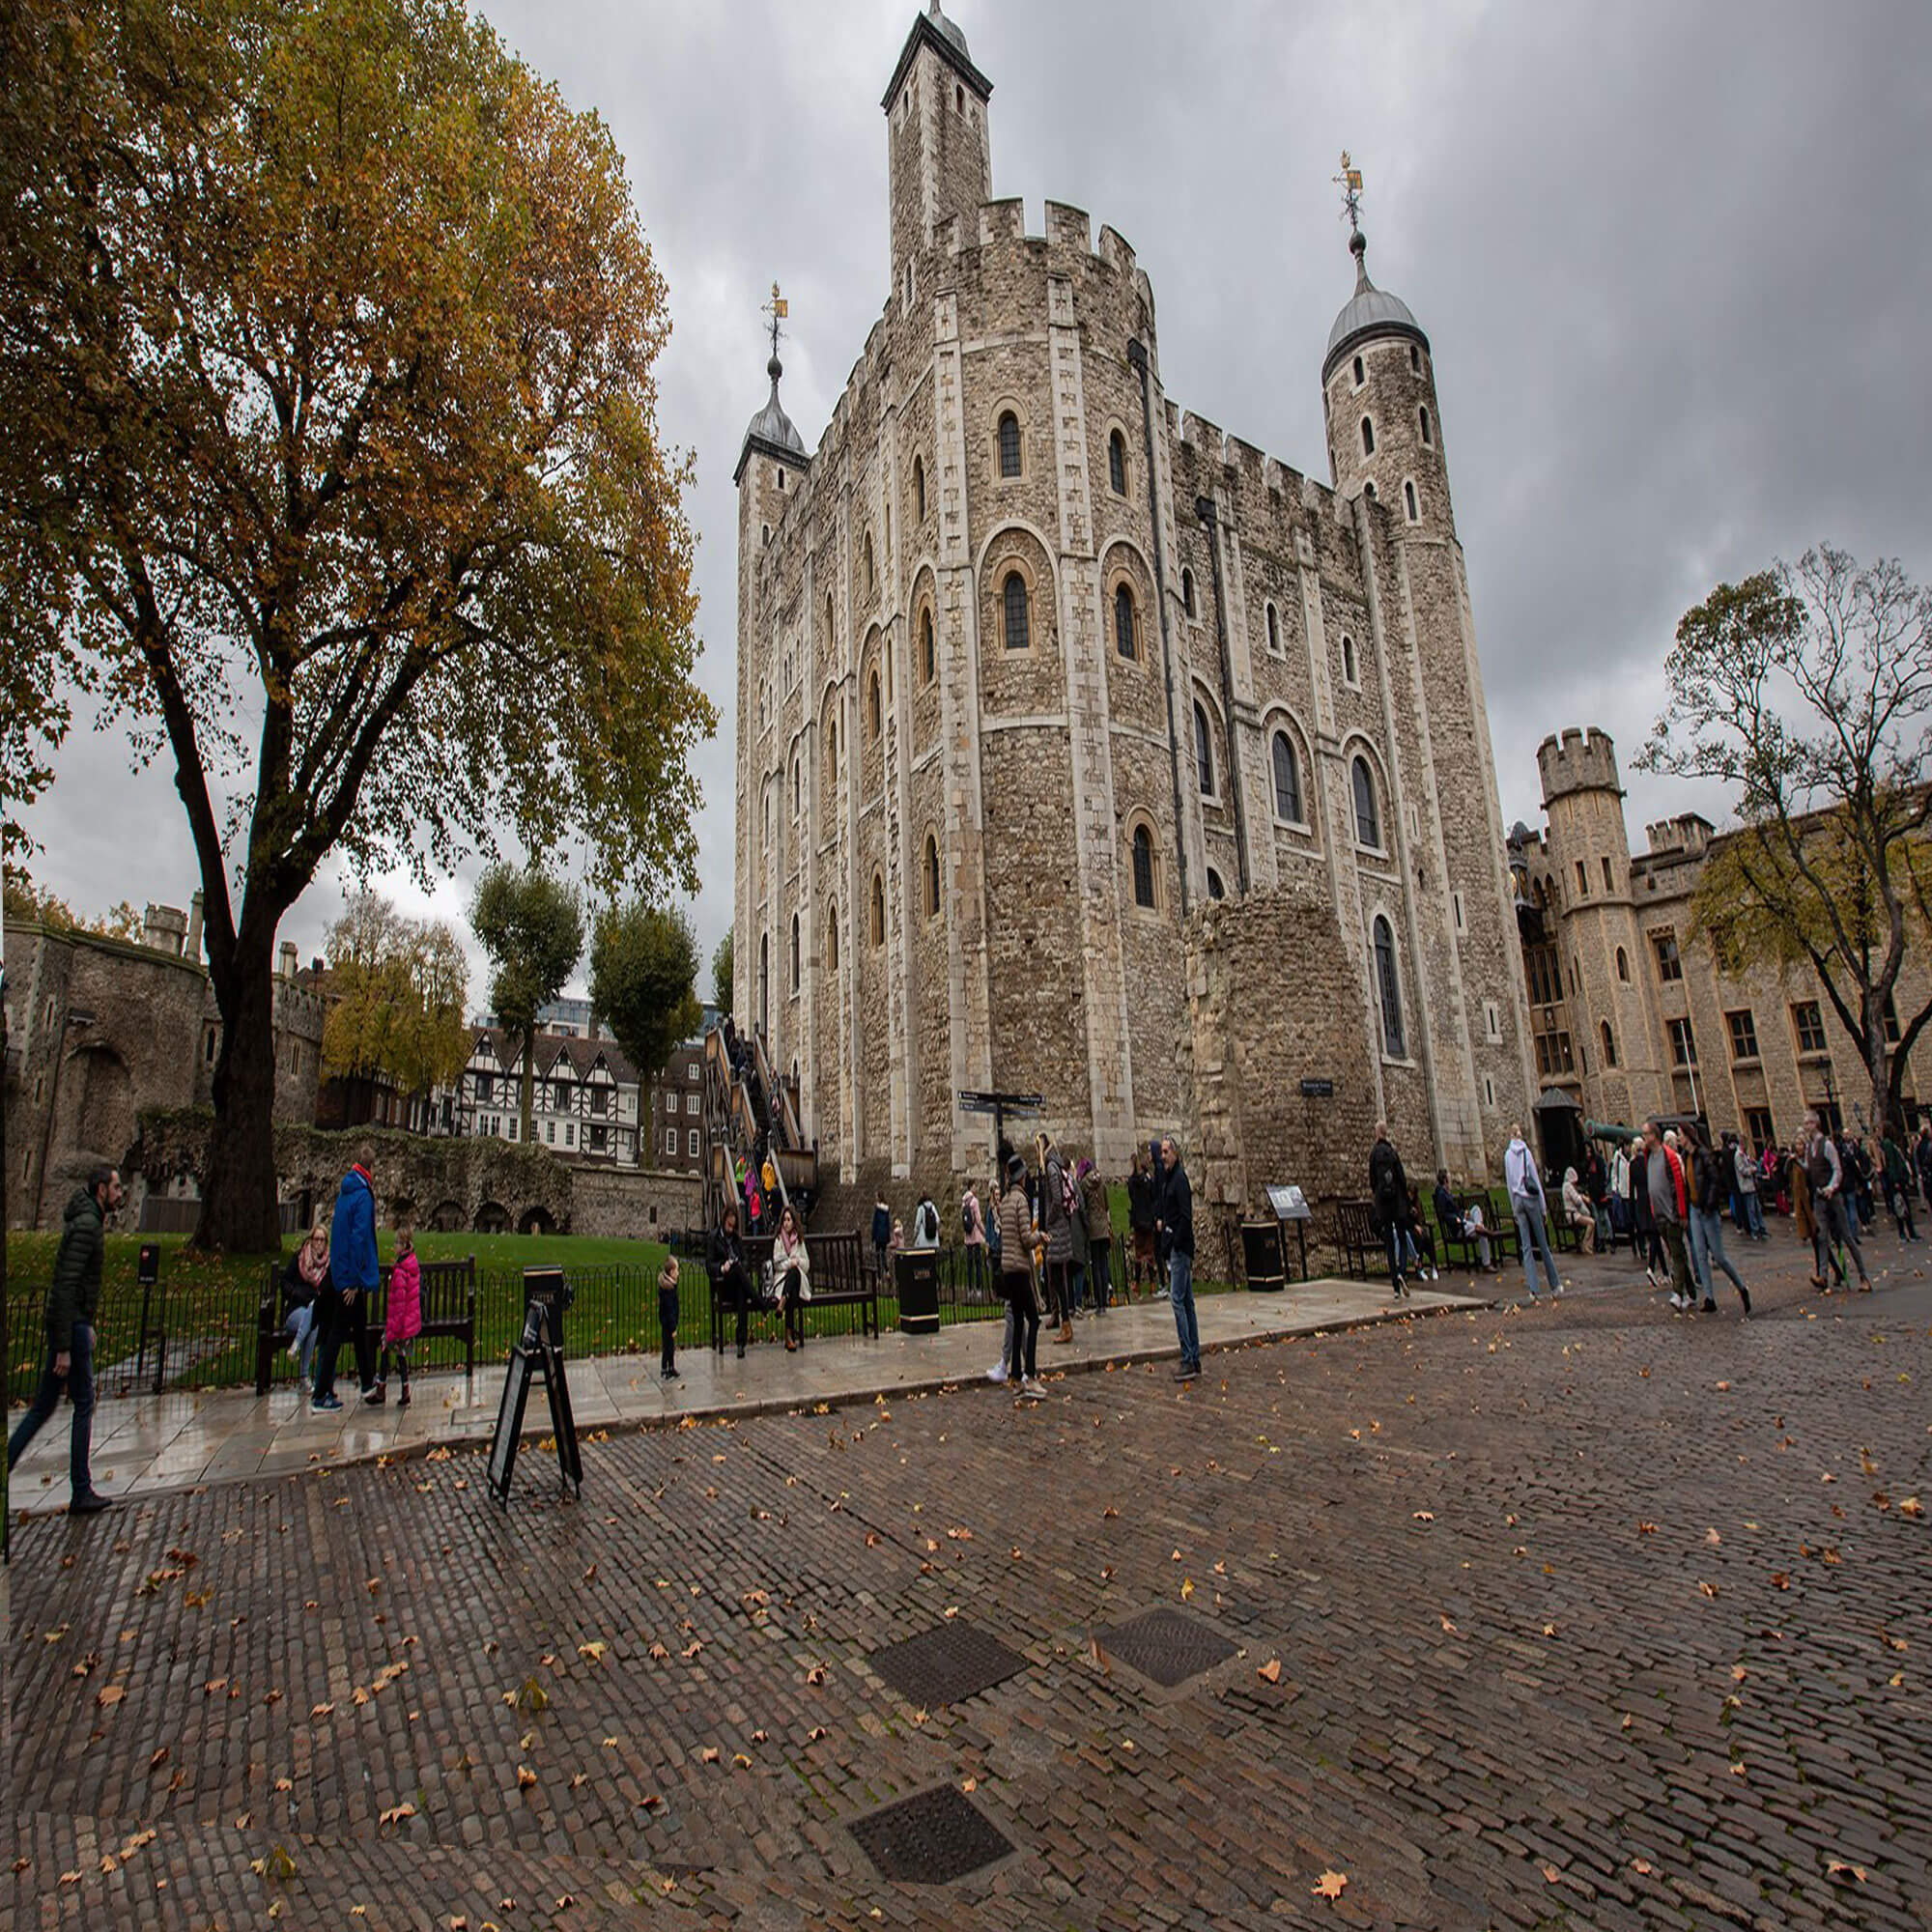 An image of the Tower of London